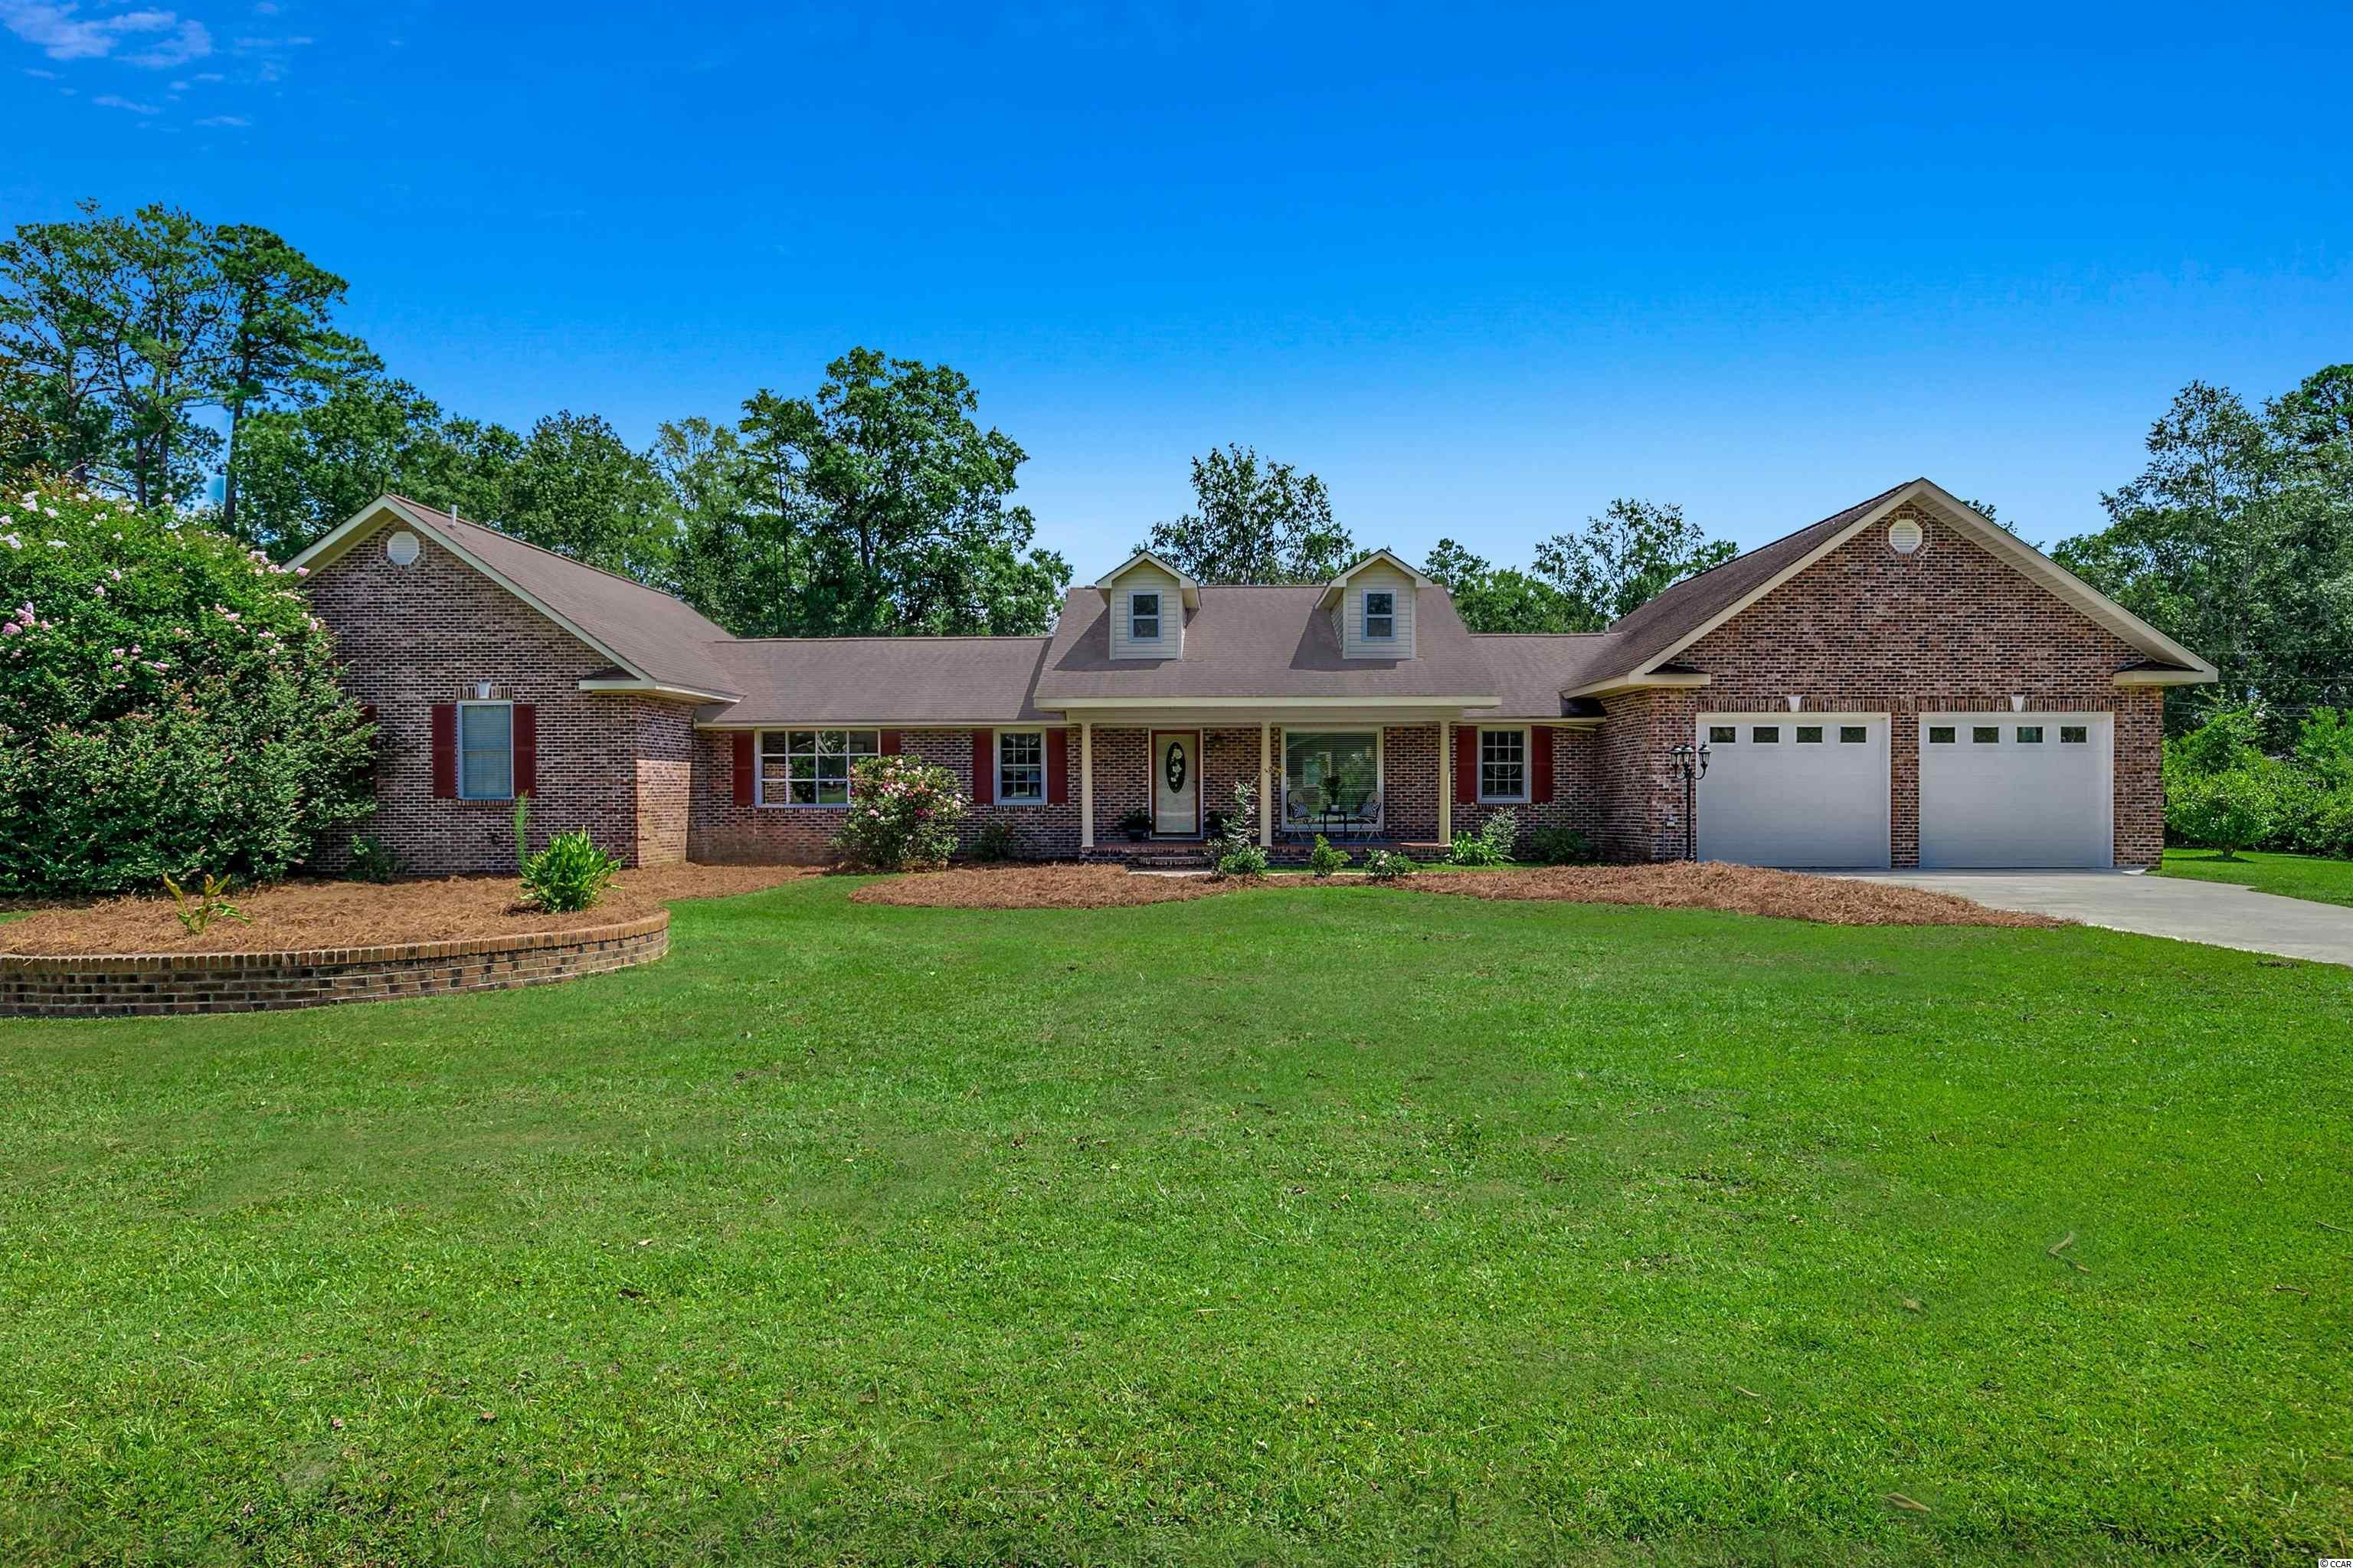 Come enjoy the freedom of having NO HOA at this lovely home located in the peaceful community of McClary in Georgetown! This low-country-style home sits on approximately two acres of land. It was built-to-last with an all-brick exterior and a raised concrete foundation. This one-of-a-kind home is being offered fully-furnished. It has been tastefully decorated with coastal artwork, and the entire home has been freshly painted. When you arrive, you will see a big southern front porch! This is the perfect place to sit back and enjoy your favorite ice-cold drink while you read a good book. As you walk into this beautiful home, you will see a real wood-burning stove and a large living room where you can cozy up with all your loved ones in the colder months. All the main living areas feature durable ceramic tile floors. The kitchen has been completely remodeled! Corian countertops were added along with a custom backsplash and gorgeous cabinets. There is a pantry and plenty of space for all your culinary essentials. The master bedroom features high vaulted ceilings with a sitting area for watching tv and a special loft with a spiral staircase! French doors open up to the master bath, which is fit for royalty! There is a huge jacuzzi tub with a very unique circular tray ceiling, separate dual sinks, and a tile shower with a bench! The walk-in closet is 16x8 and it already has some built-ins with drawers. There's another large bedroom as well, and it could be used as a second master if you wanted. It has its own en-suite bathroom. This amazing home has been very well-maintained by the owners, and they are even offering a home warranty for extra peace of mind. As you venture outside, you will find a covered back porch with stone-tile flooring. This area is mainly used for grilling out and taking a load off after a long week. The grill and patio furniture will convey. There is a nice wooden deck that comes off the master bedroom as well. It has an orange tree growing right bes